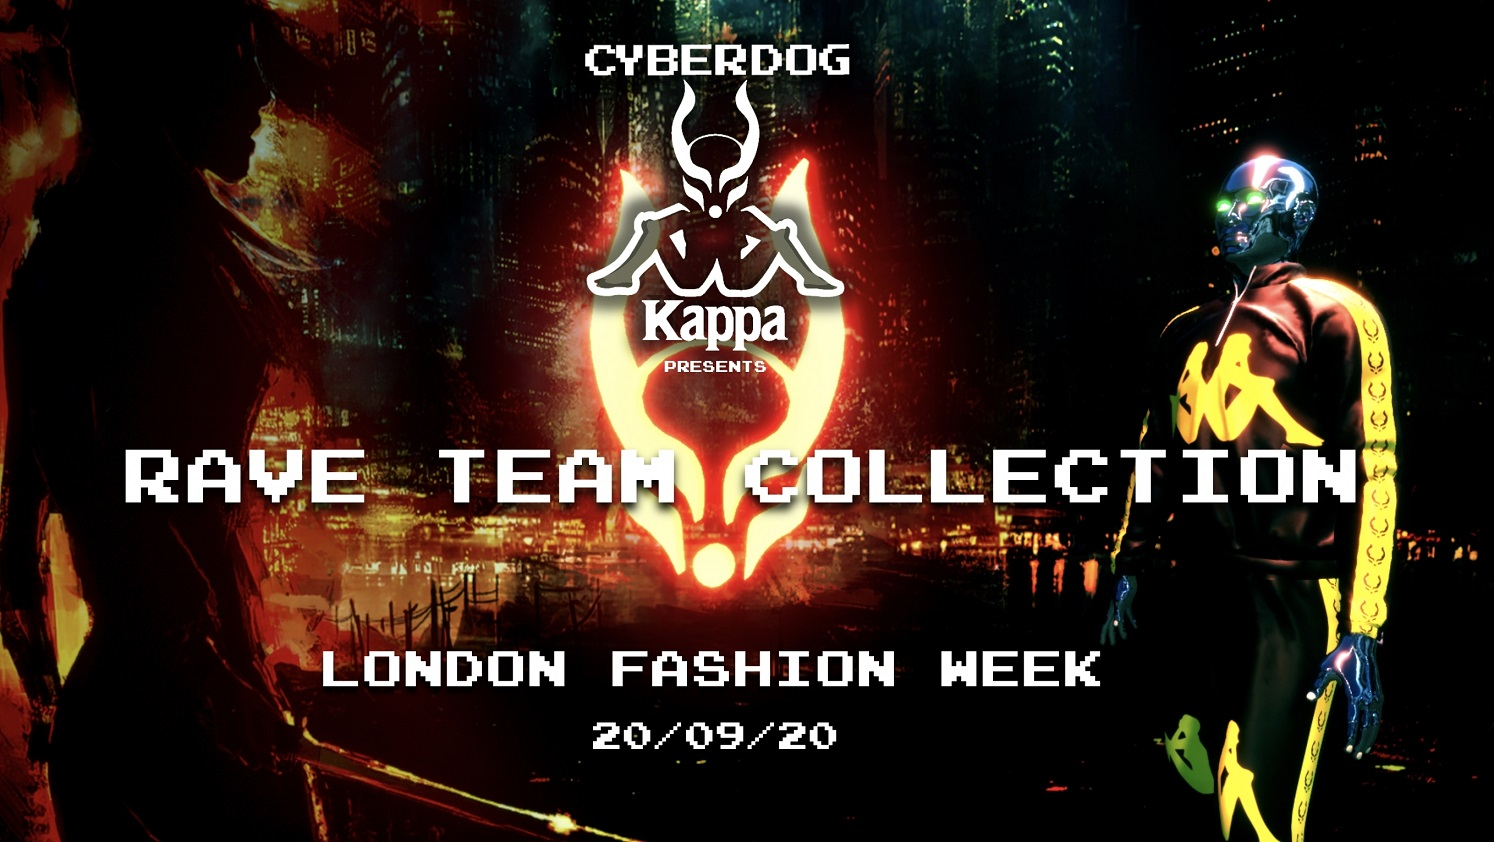 Fashion brands Cyberdog and Kappa unveil a new streetwear collection during a live virtual reality show during London Fashion Week.